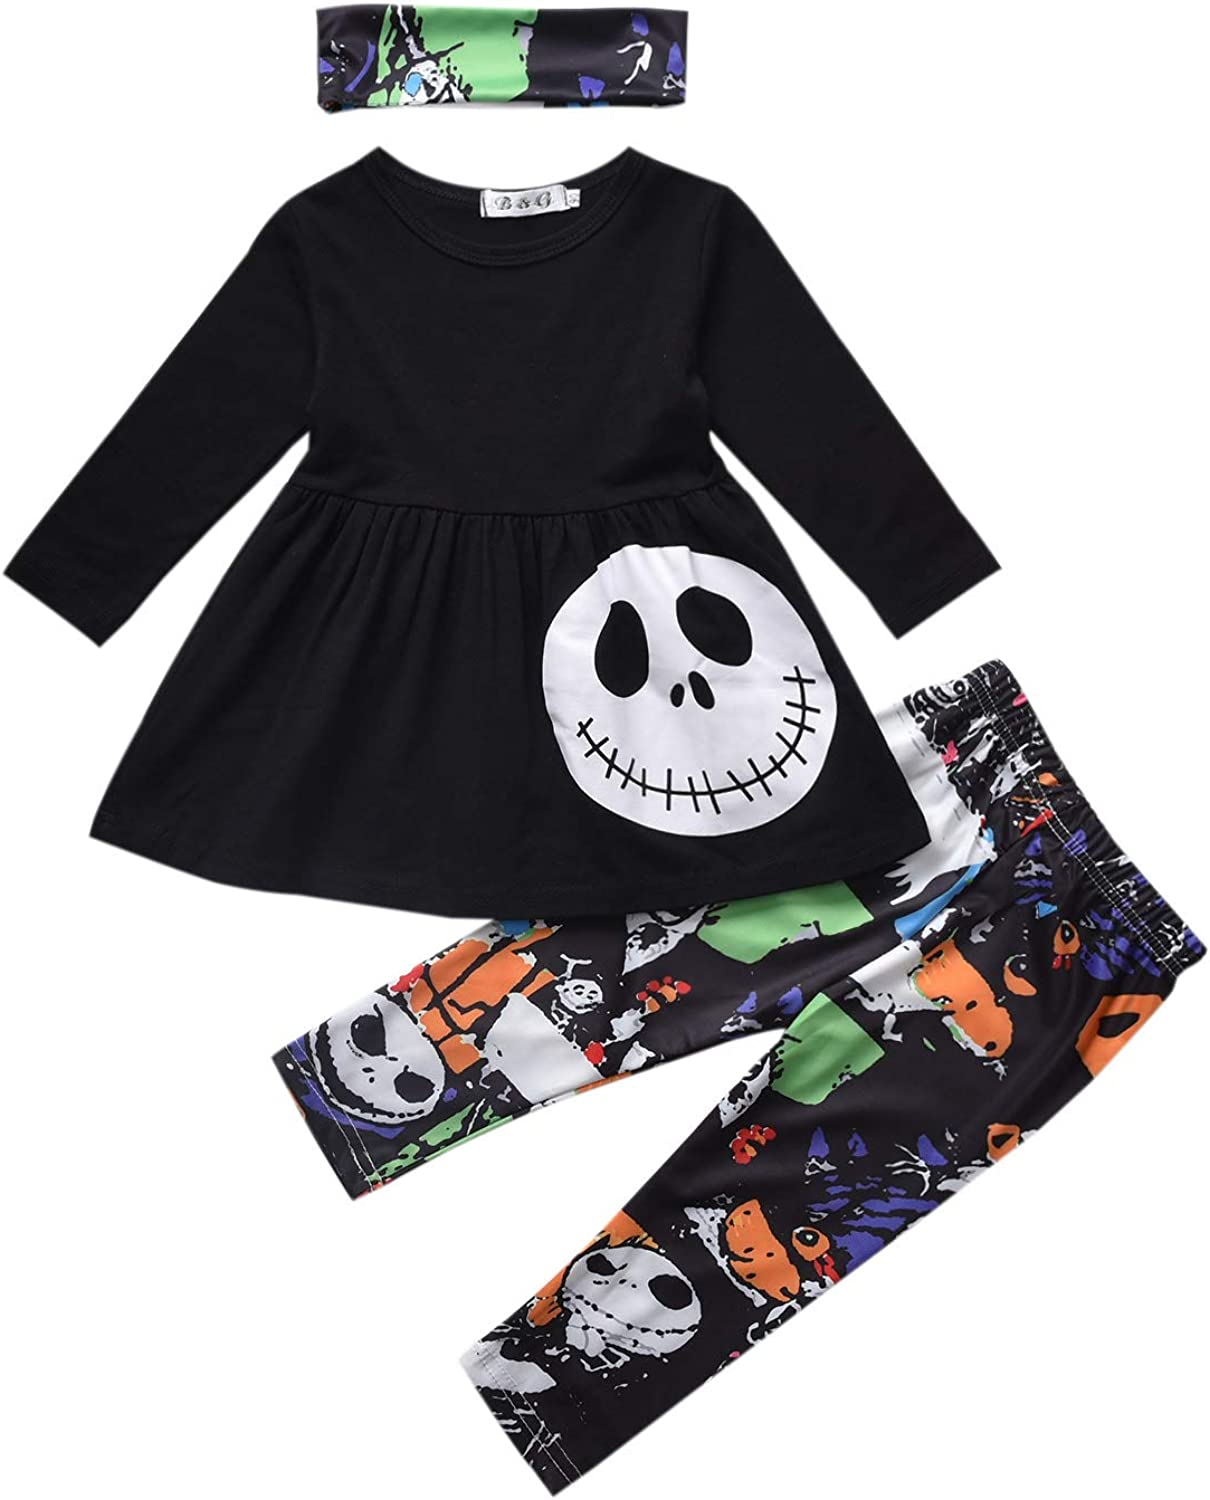 3PCS Baby Girls Halloween Outfits Skull Tops Ghost Leggings Pants with Csarf Hat Clothes Set